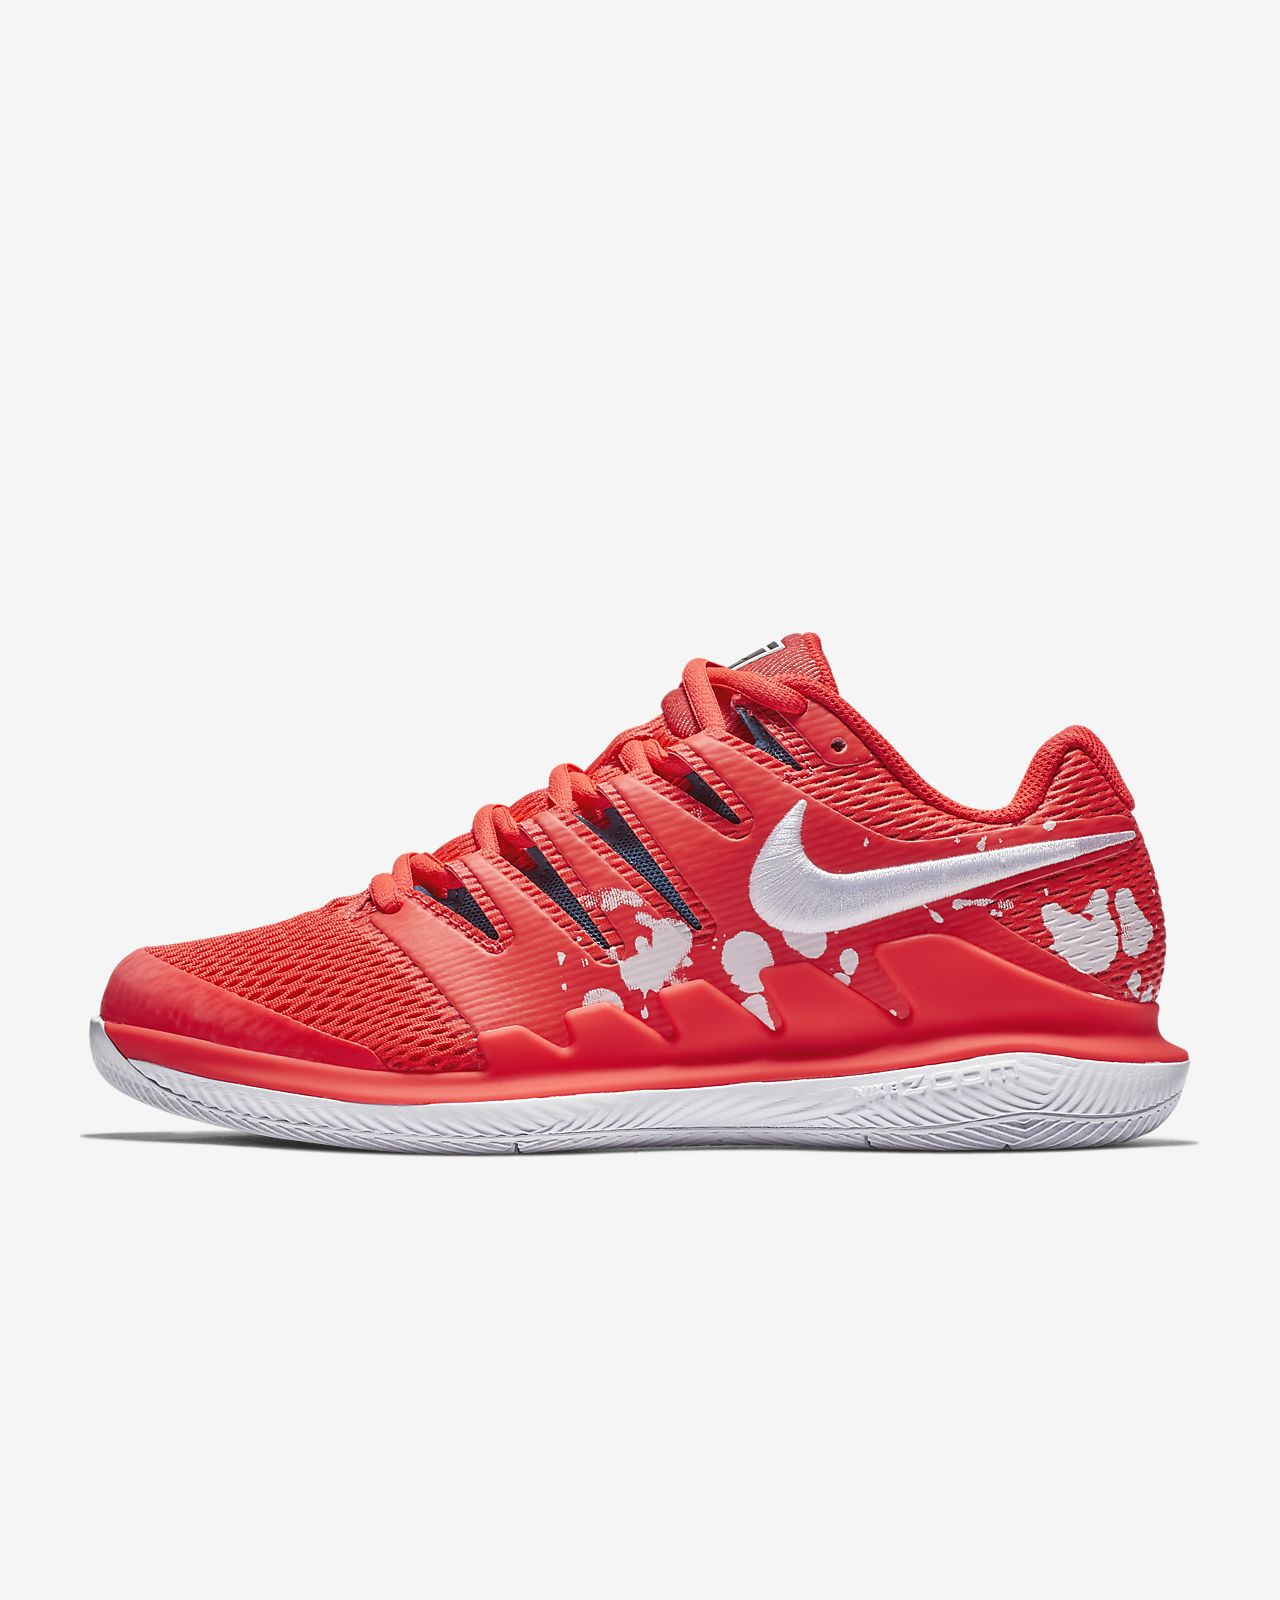 Scarpa da tennis per campi in cemento NikeCourt Air Zoom Vapor X - Donna